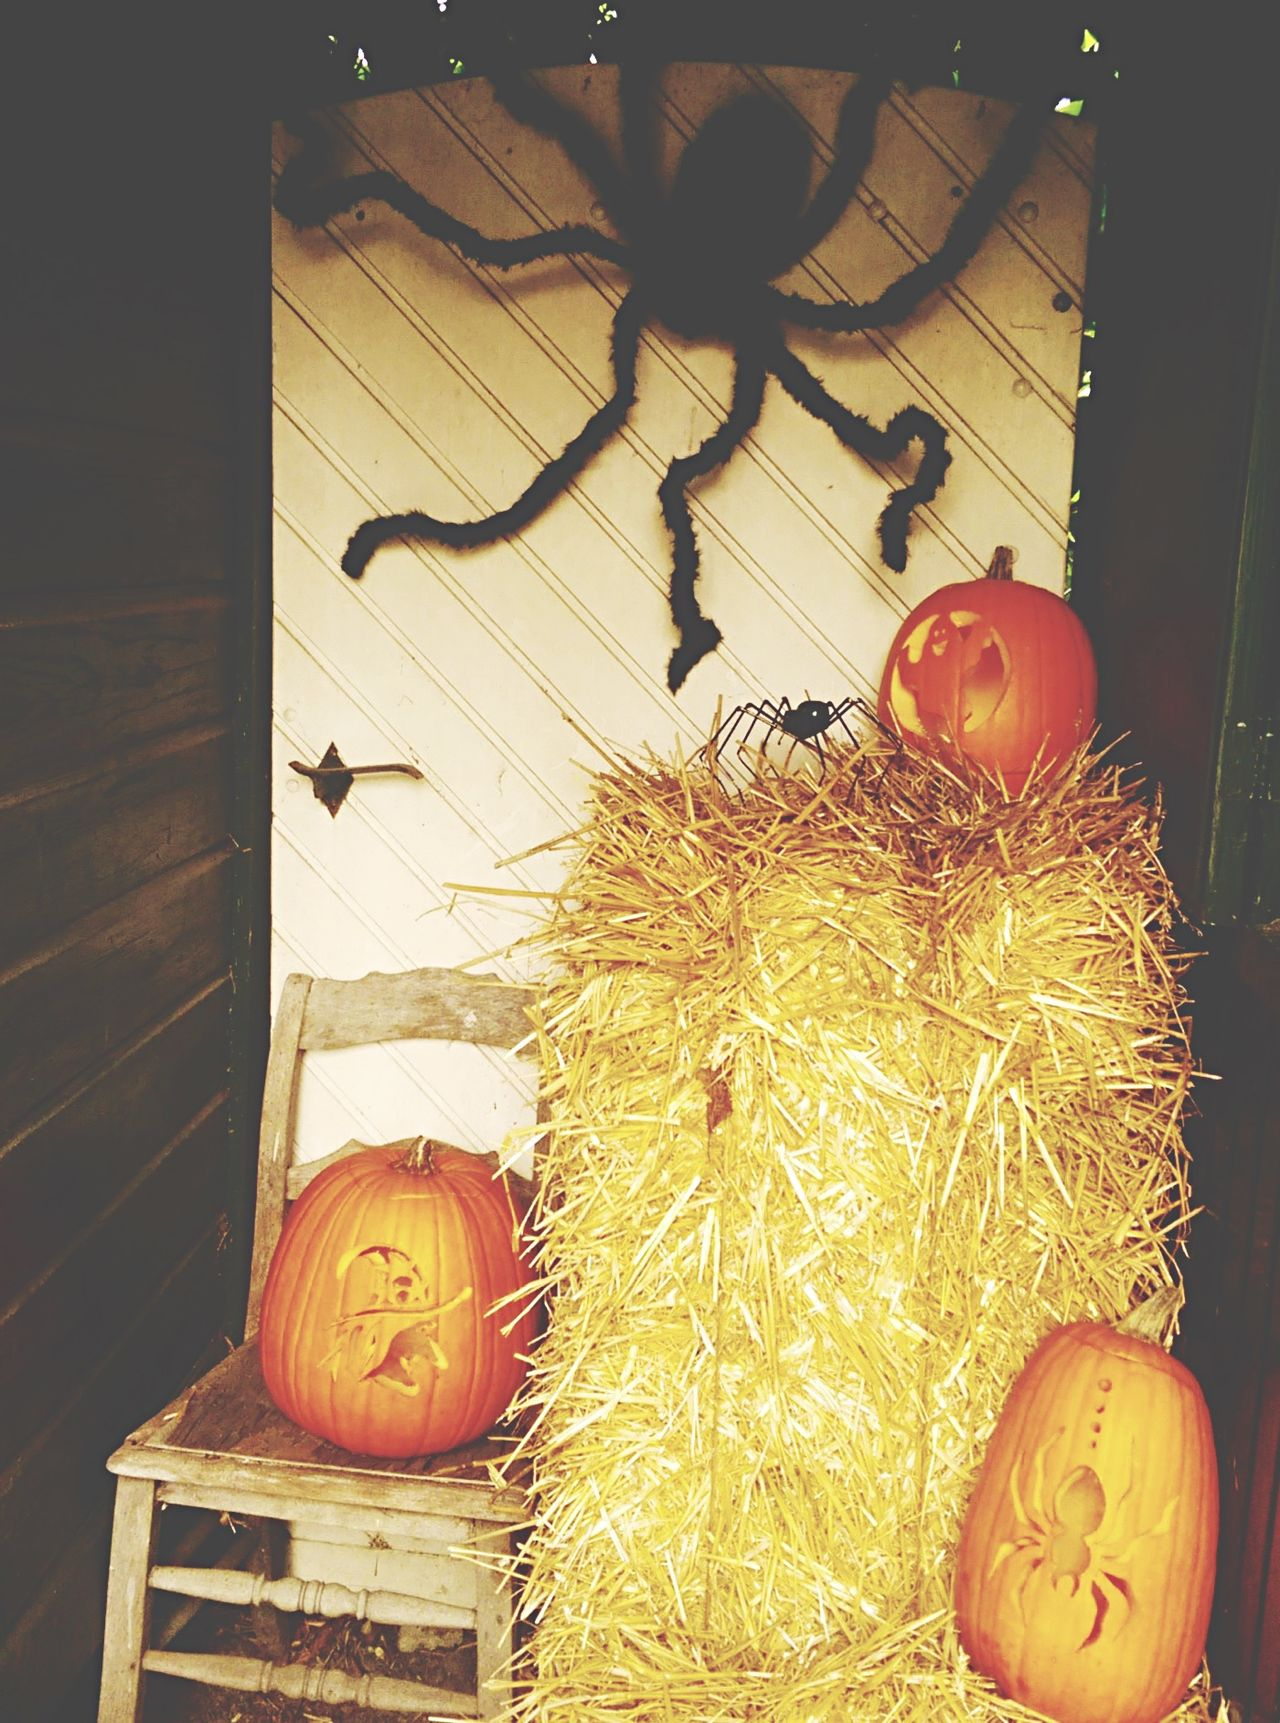 Happy Halloween Pumpkin Spyder Mystic fall Taking Pictures Composition